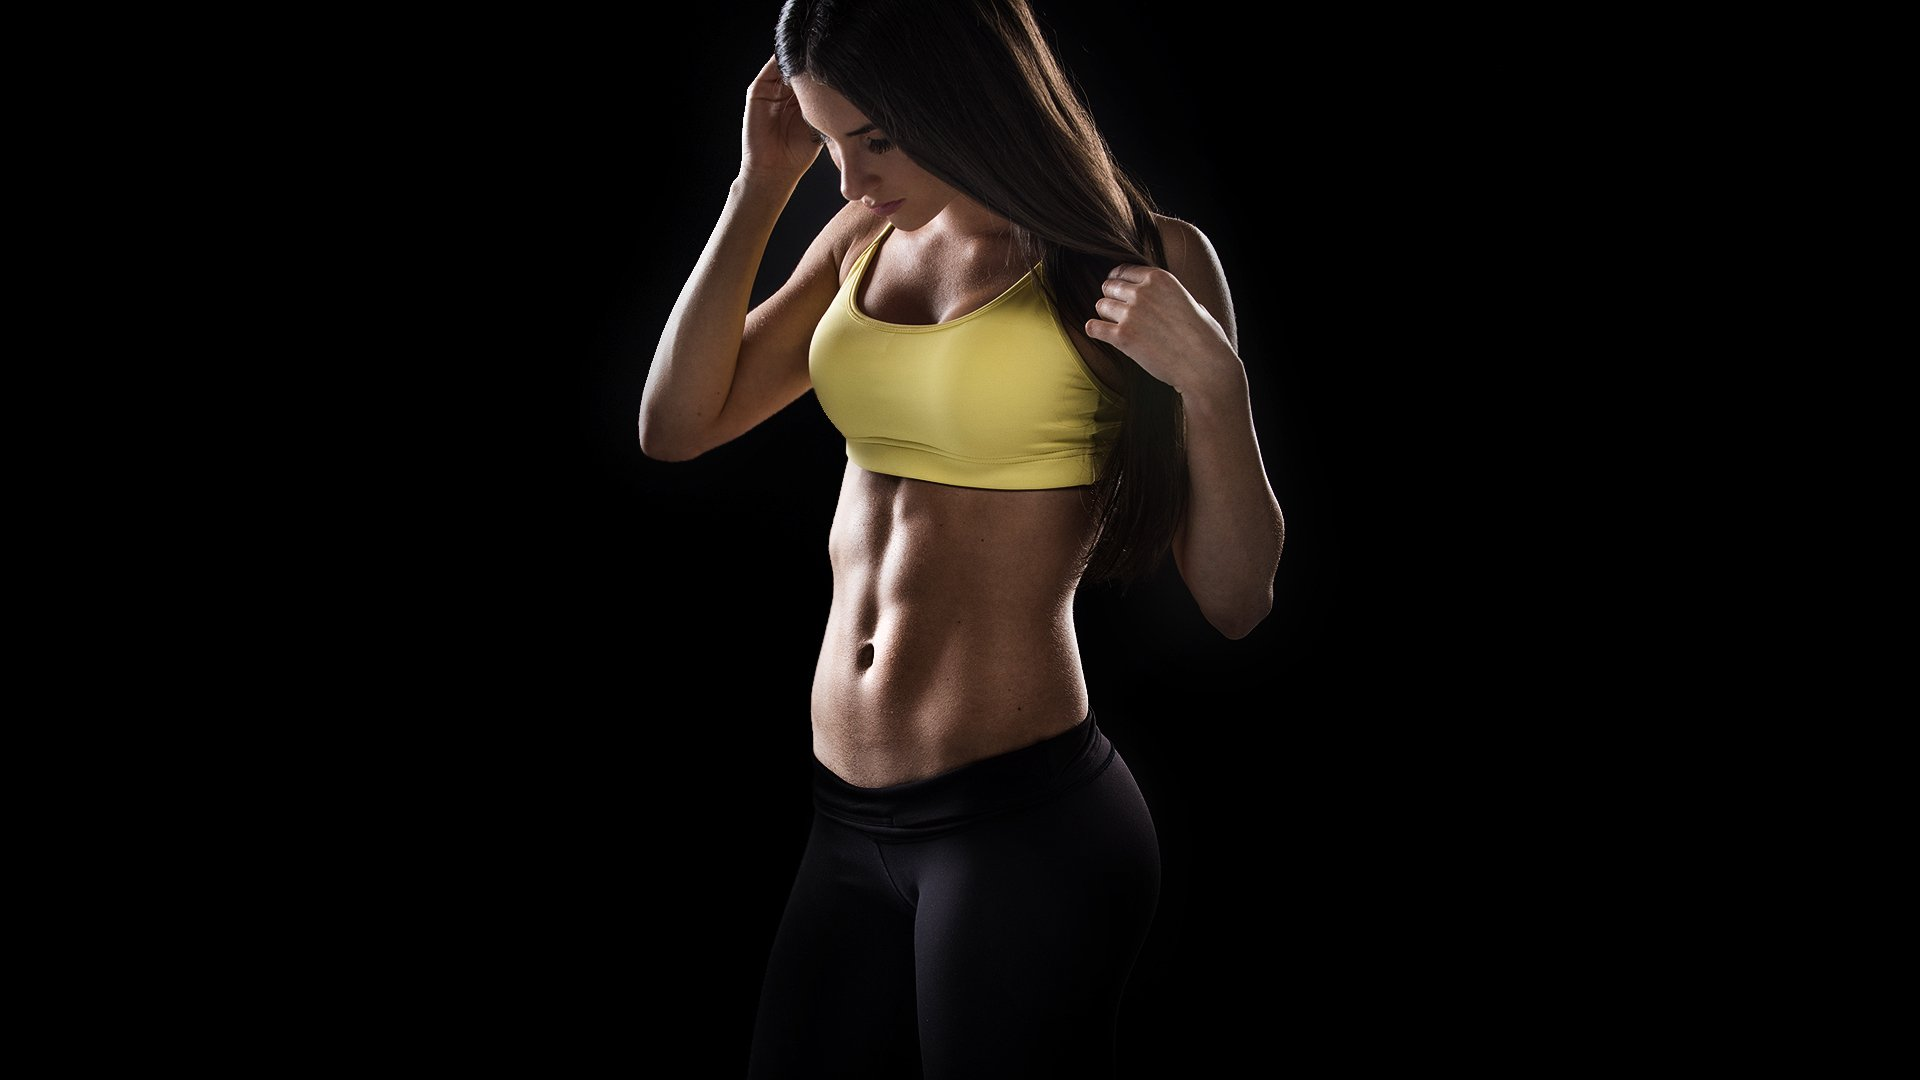 fitness wallpapers | WallpaperUP